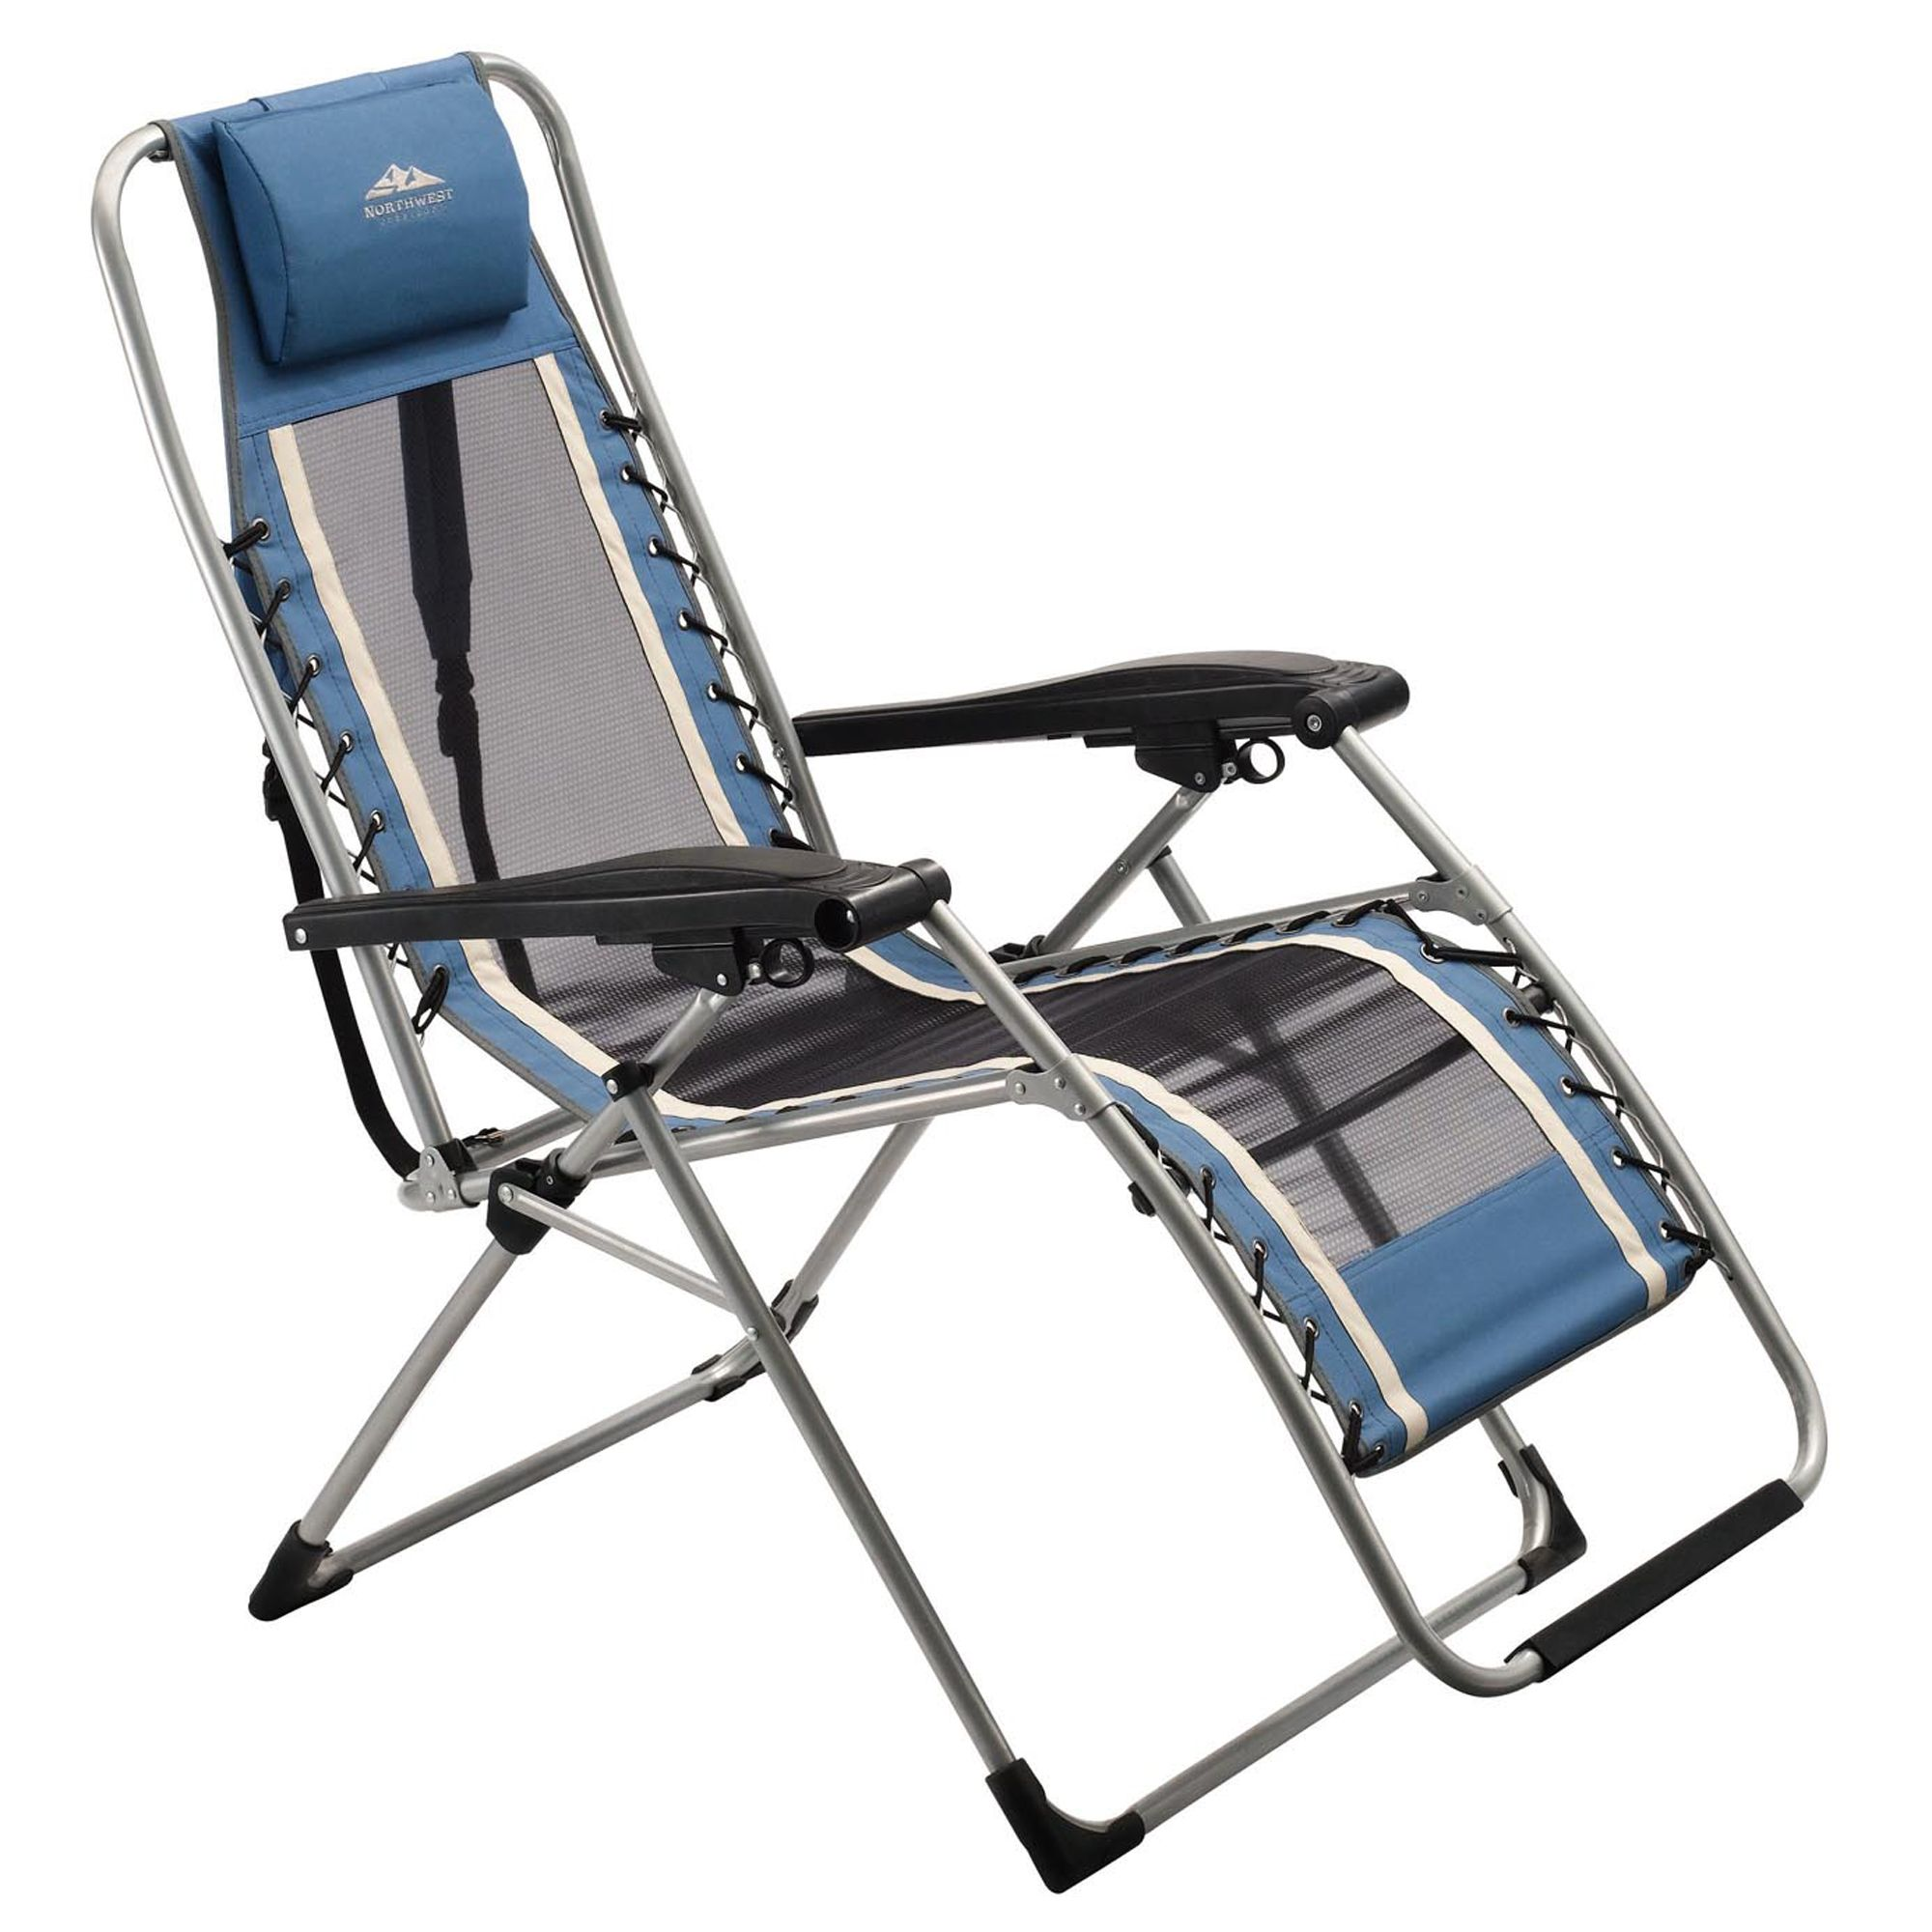 Anti Gravity Lounge Chair Northwest Territory Anti Gravity Lounger Fitness